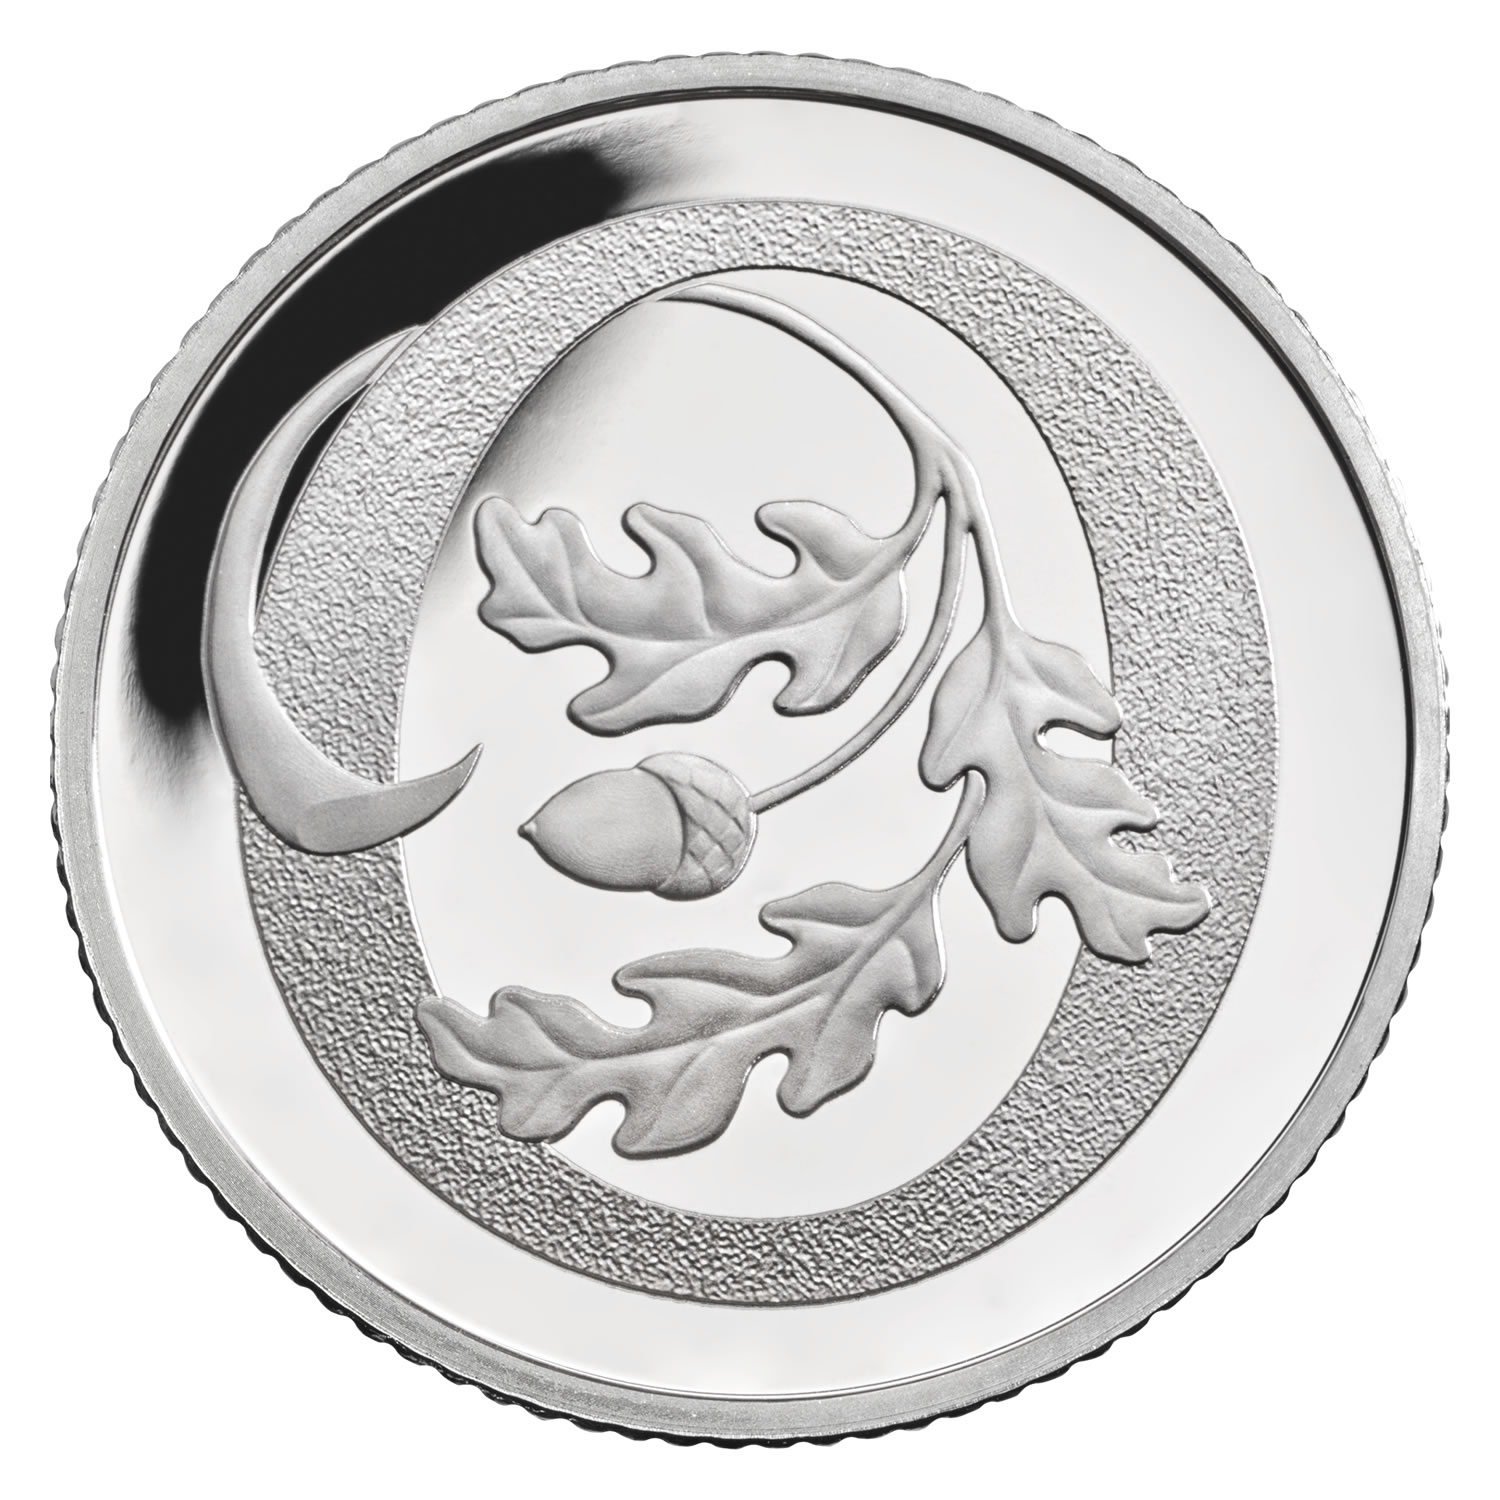 O - Oak Tree 2018 UK 10p Silver Proof Coin